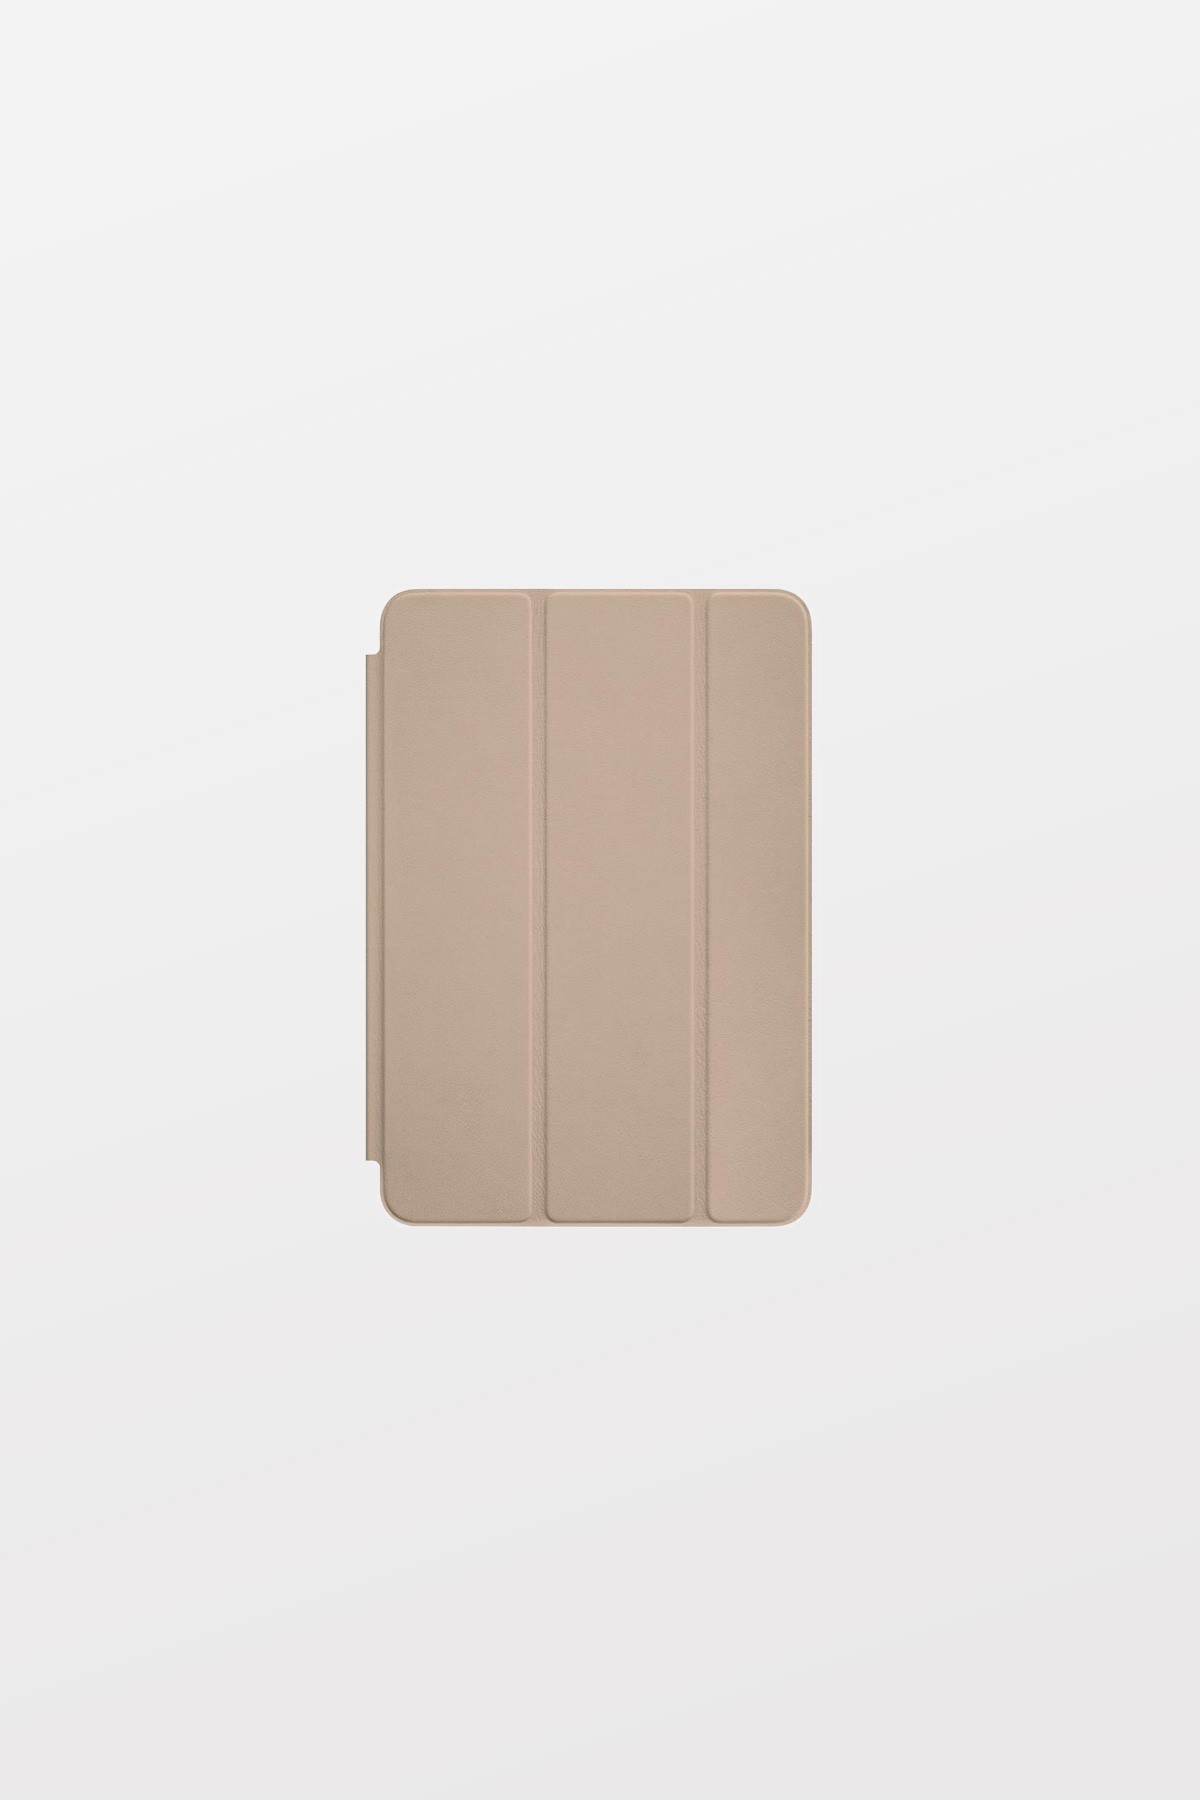 Apple iPad mini with Retina Display Smart Case - Beige